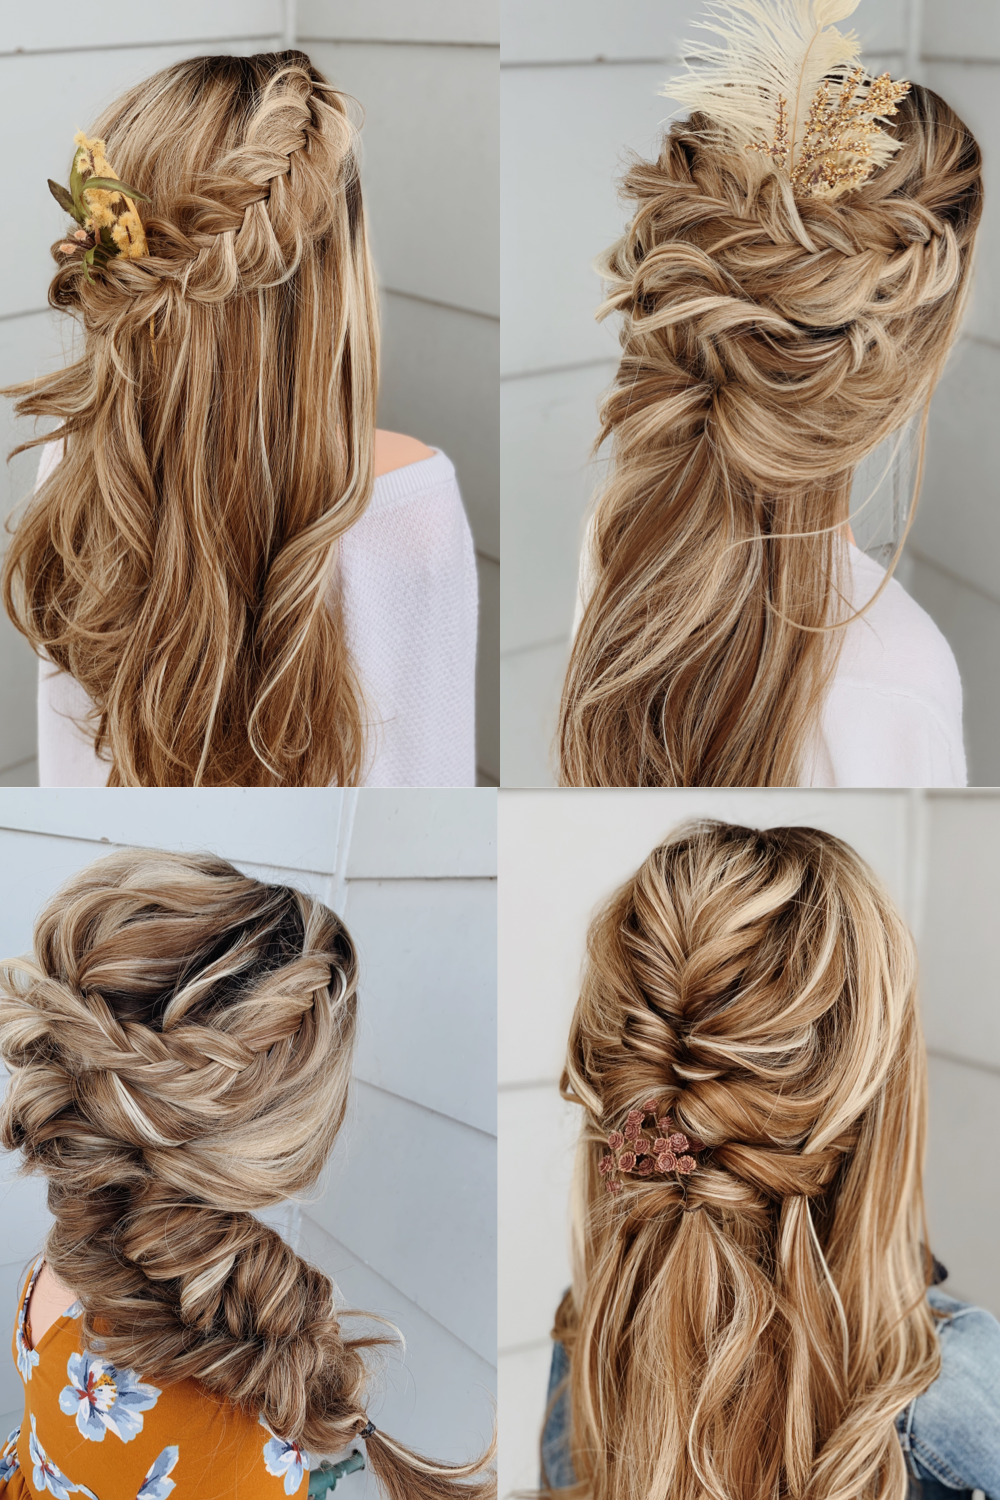 Gorgeous Boho Bridal Hairstyles Perfect For 2020 2021 Weddings In 2020 Hair Styles Artistic Hair Wedding Hairstyles For Long Hair